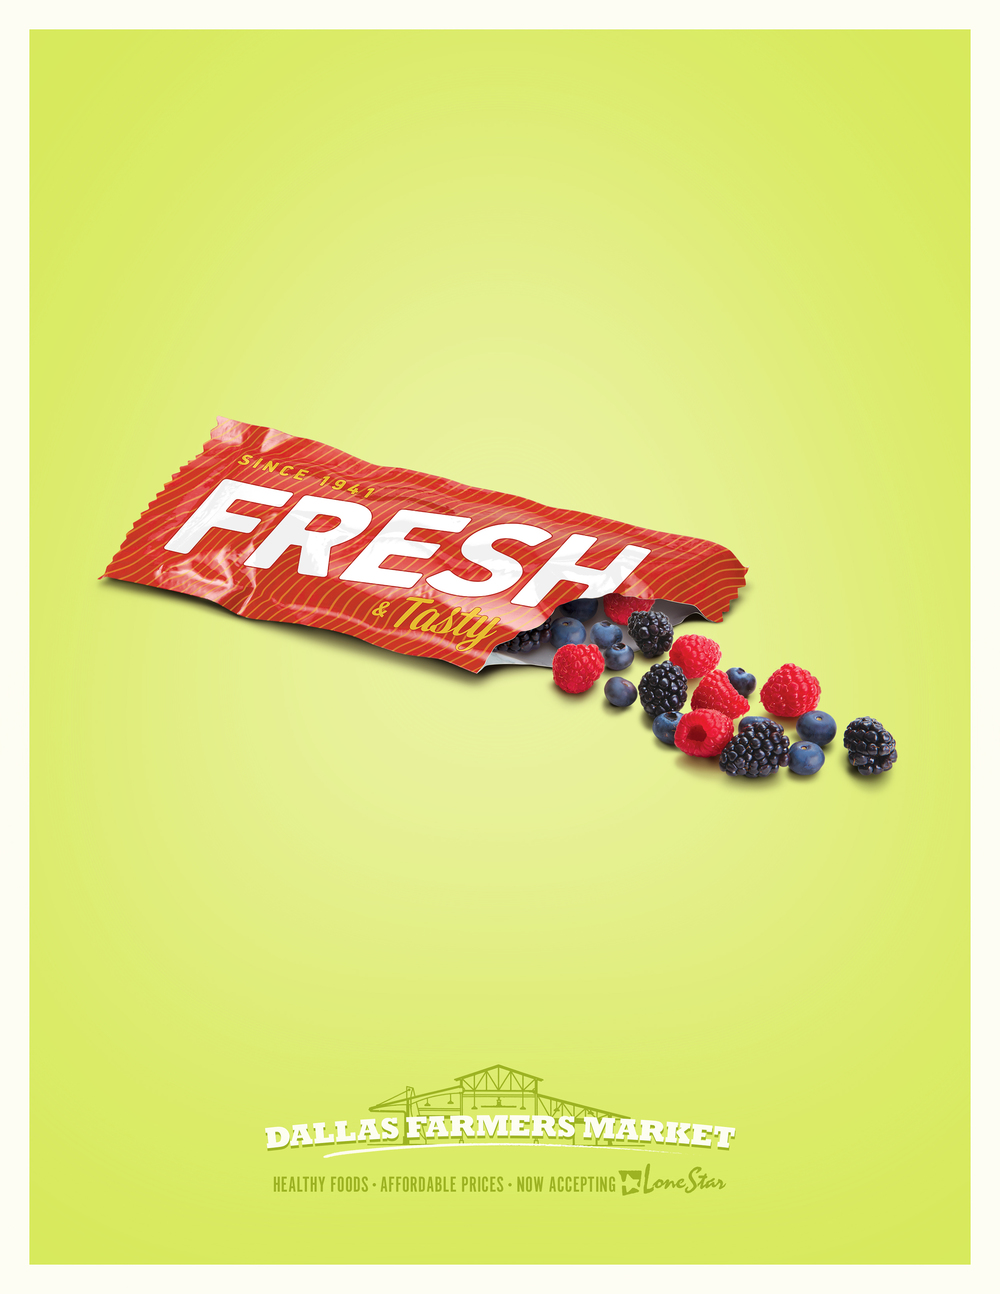 ryan-smith-creative-director-dallas-farmers-market-candy